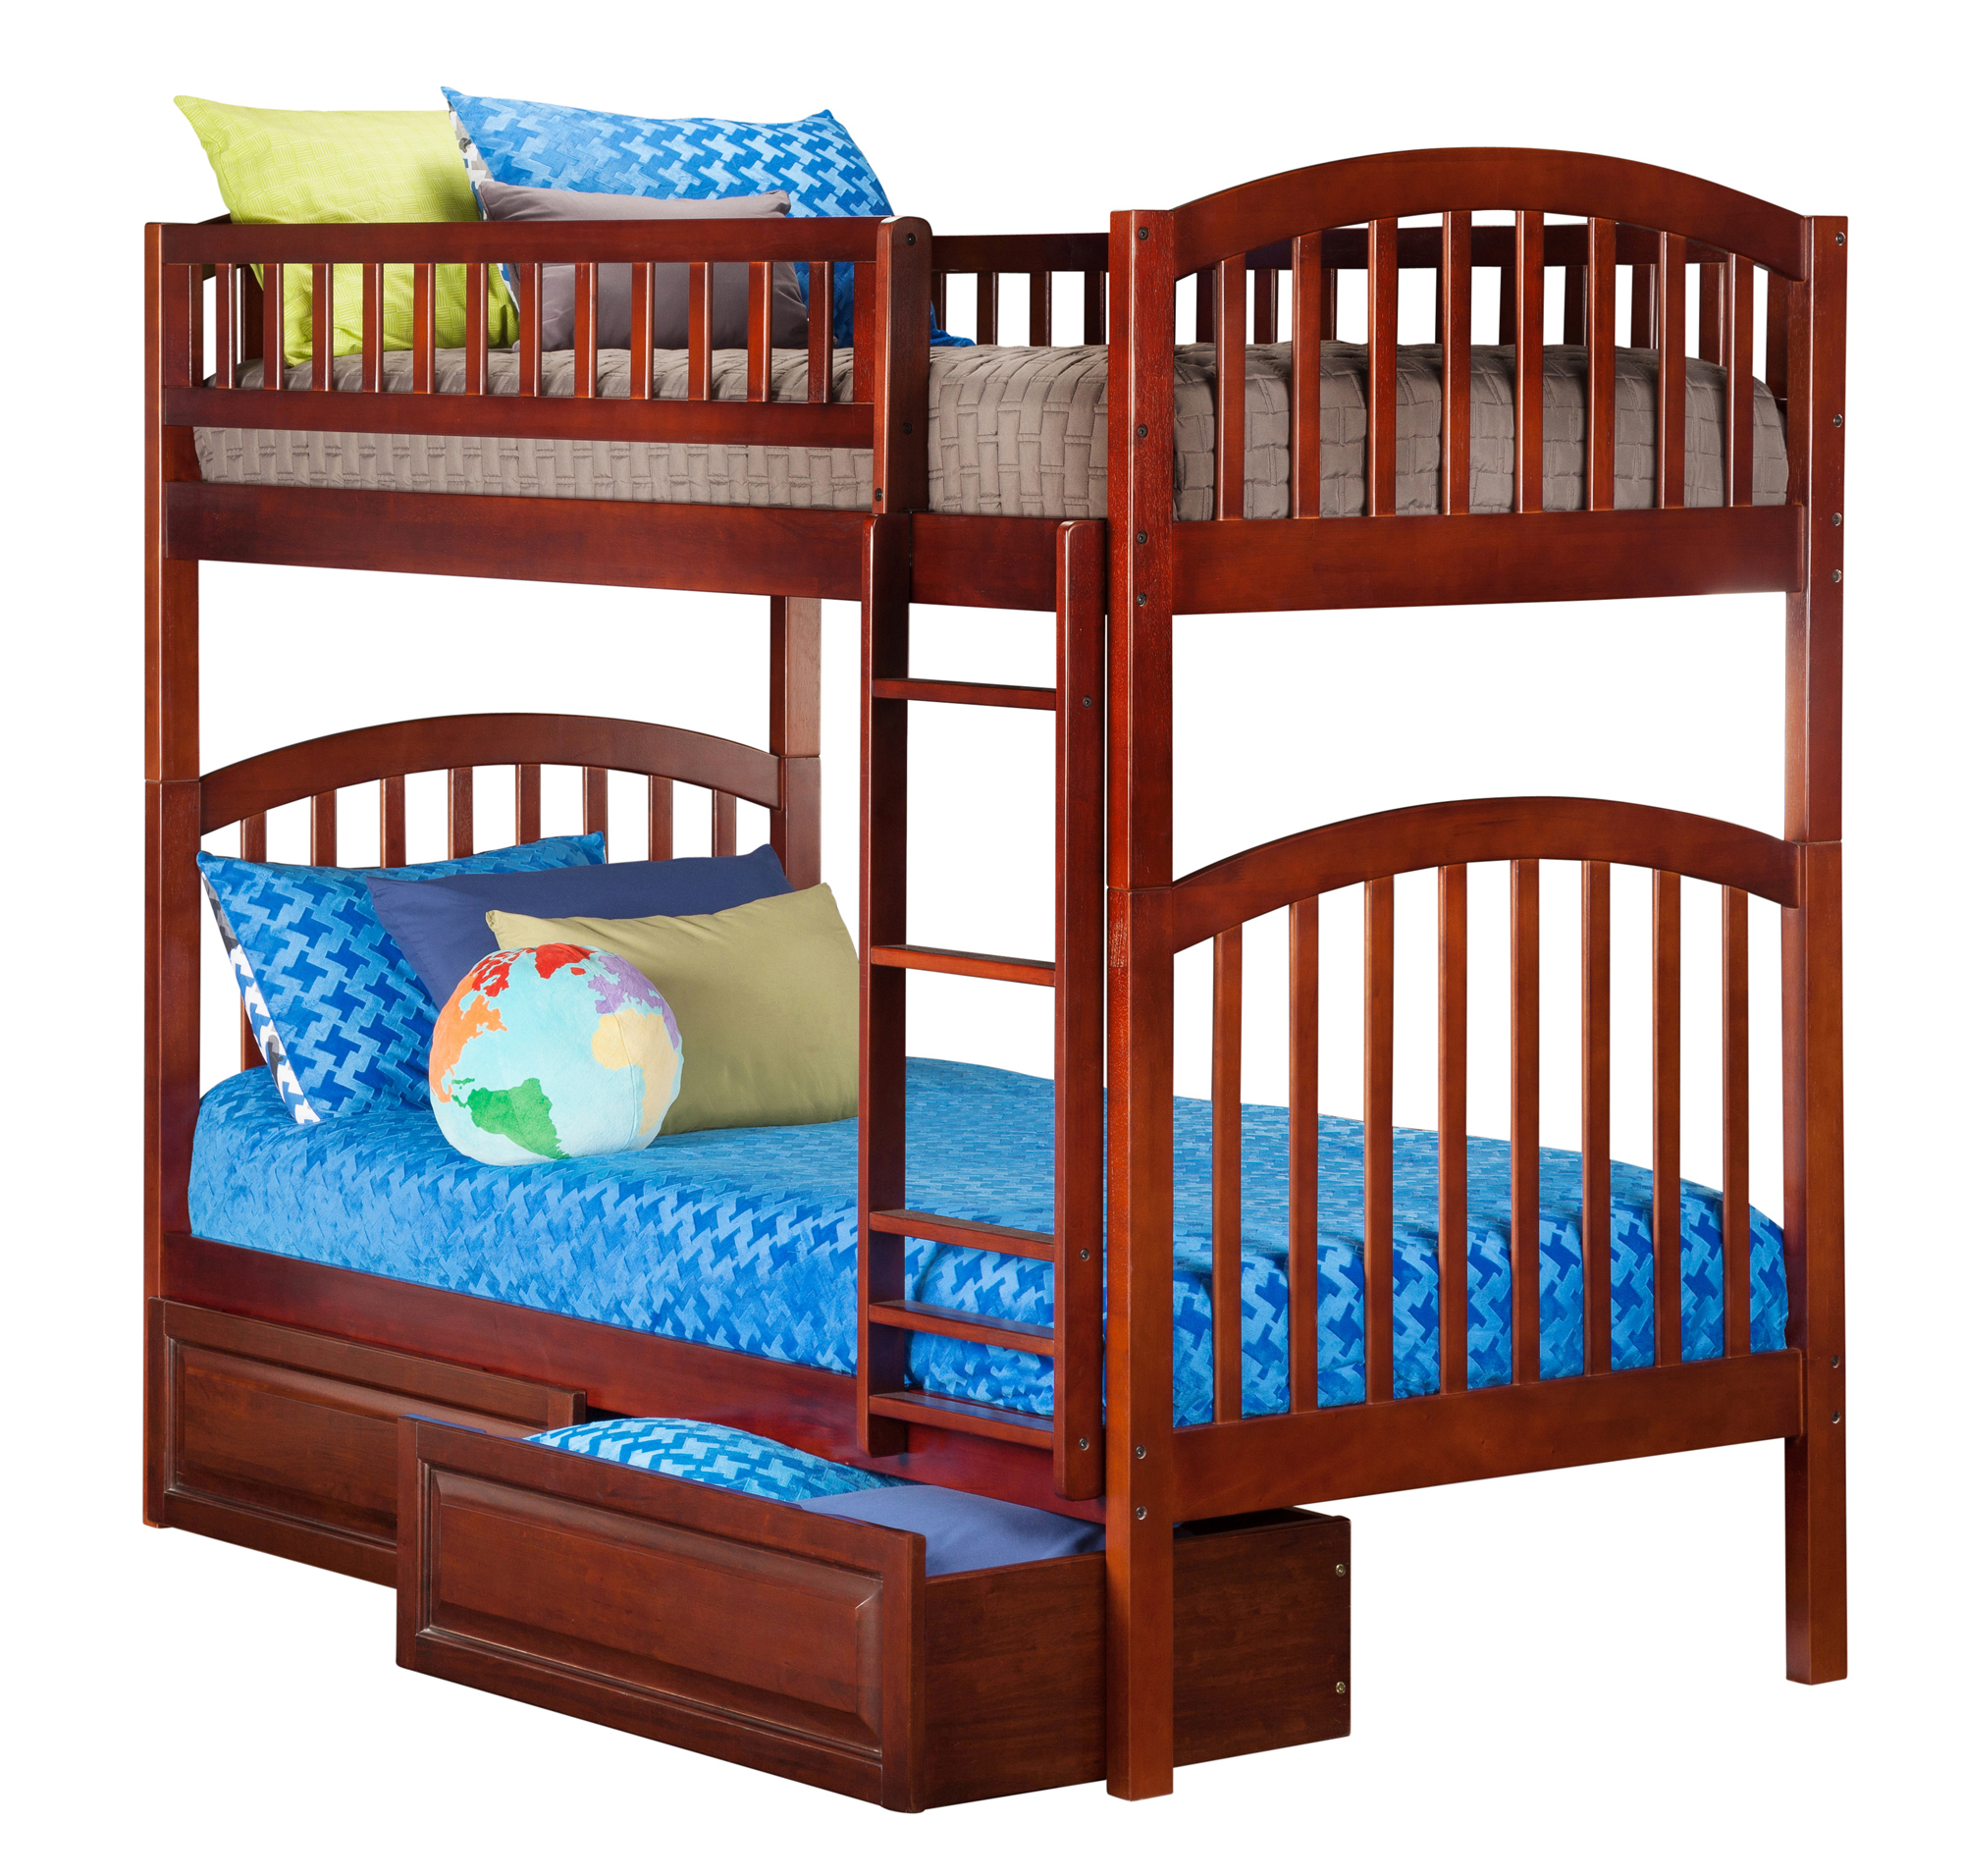 Richland Bunk Bed Twin over Twin with 2 Raised Panel Bed Drawers in Walnut